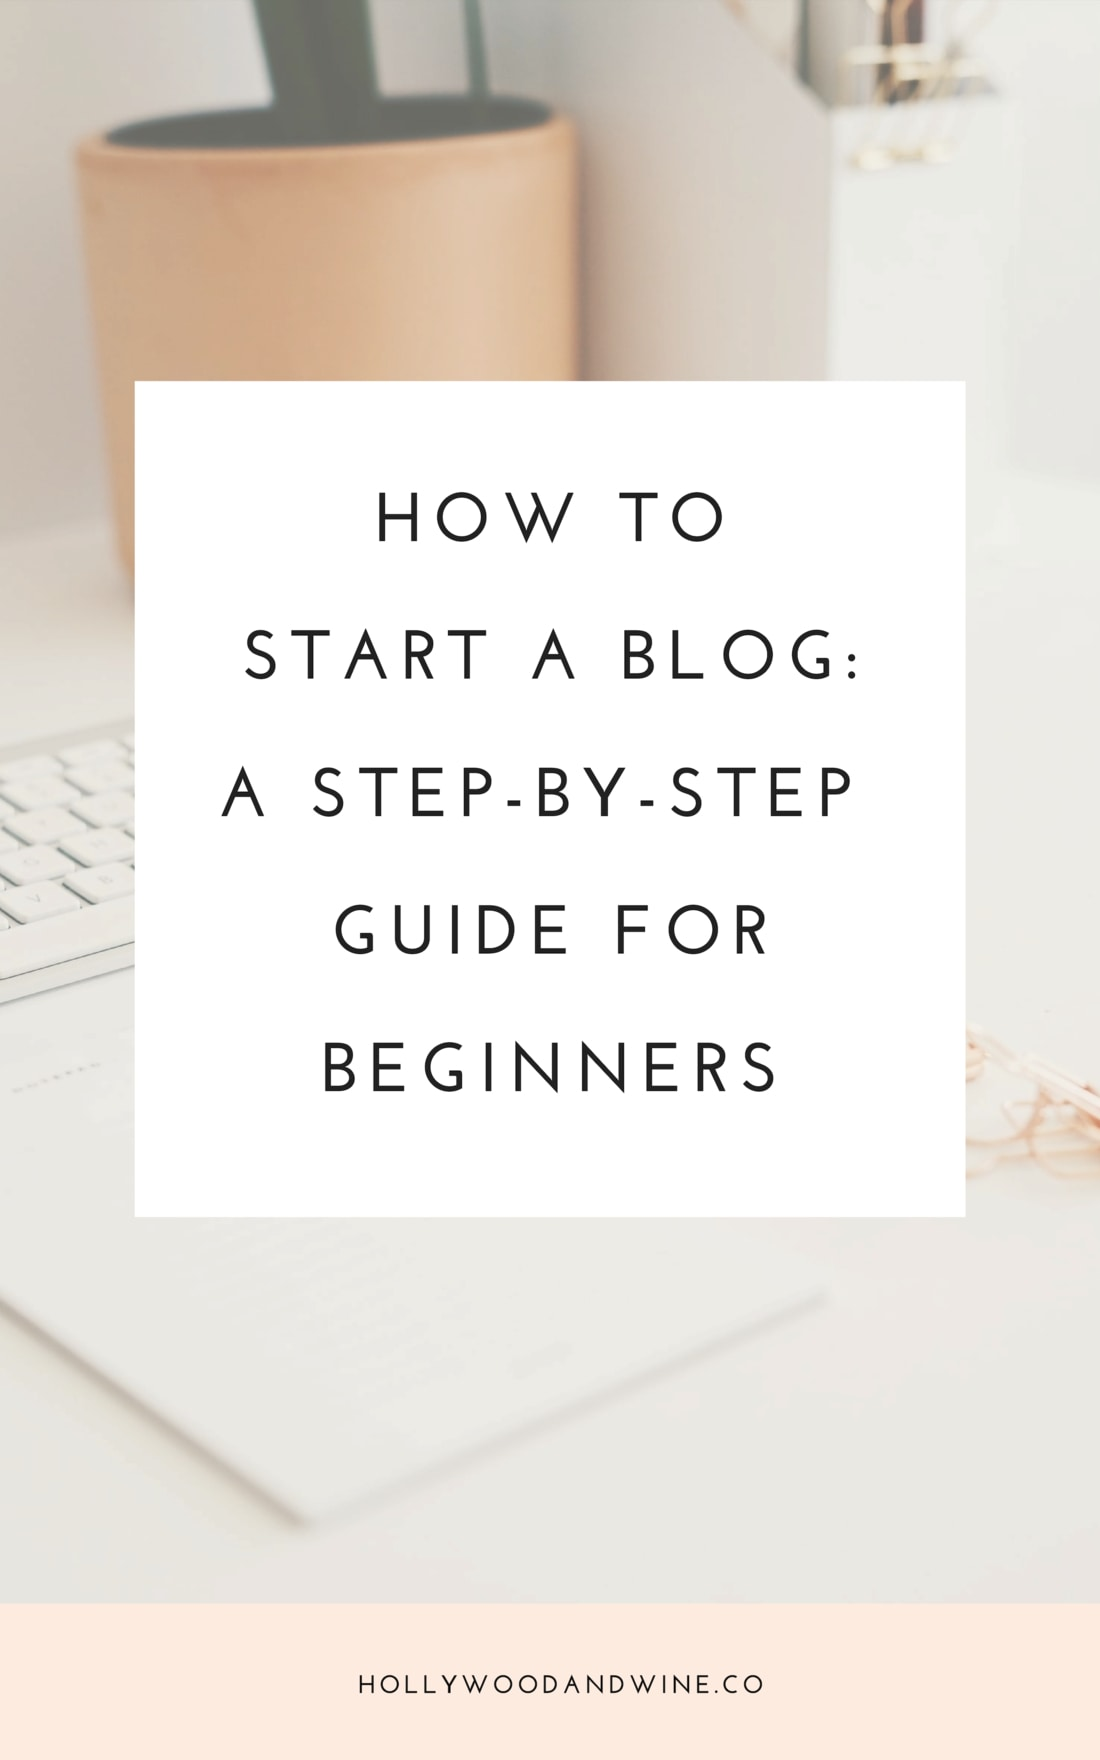 How to start a blog - a step by step guide